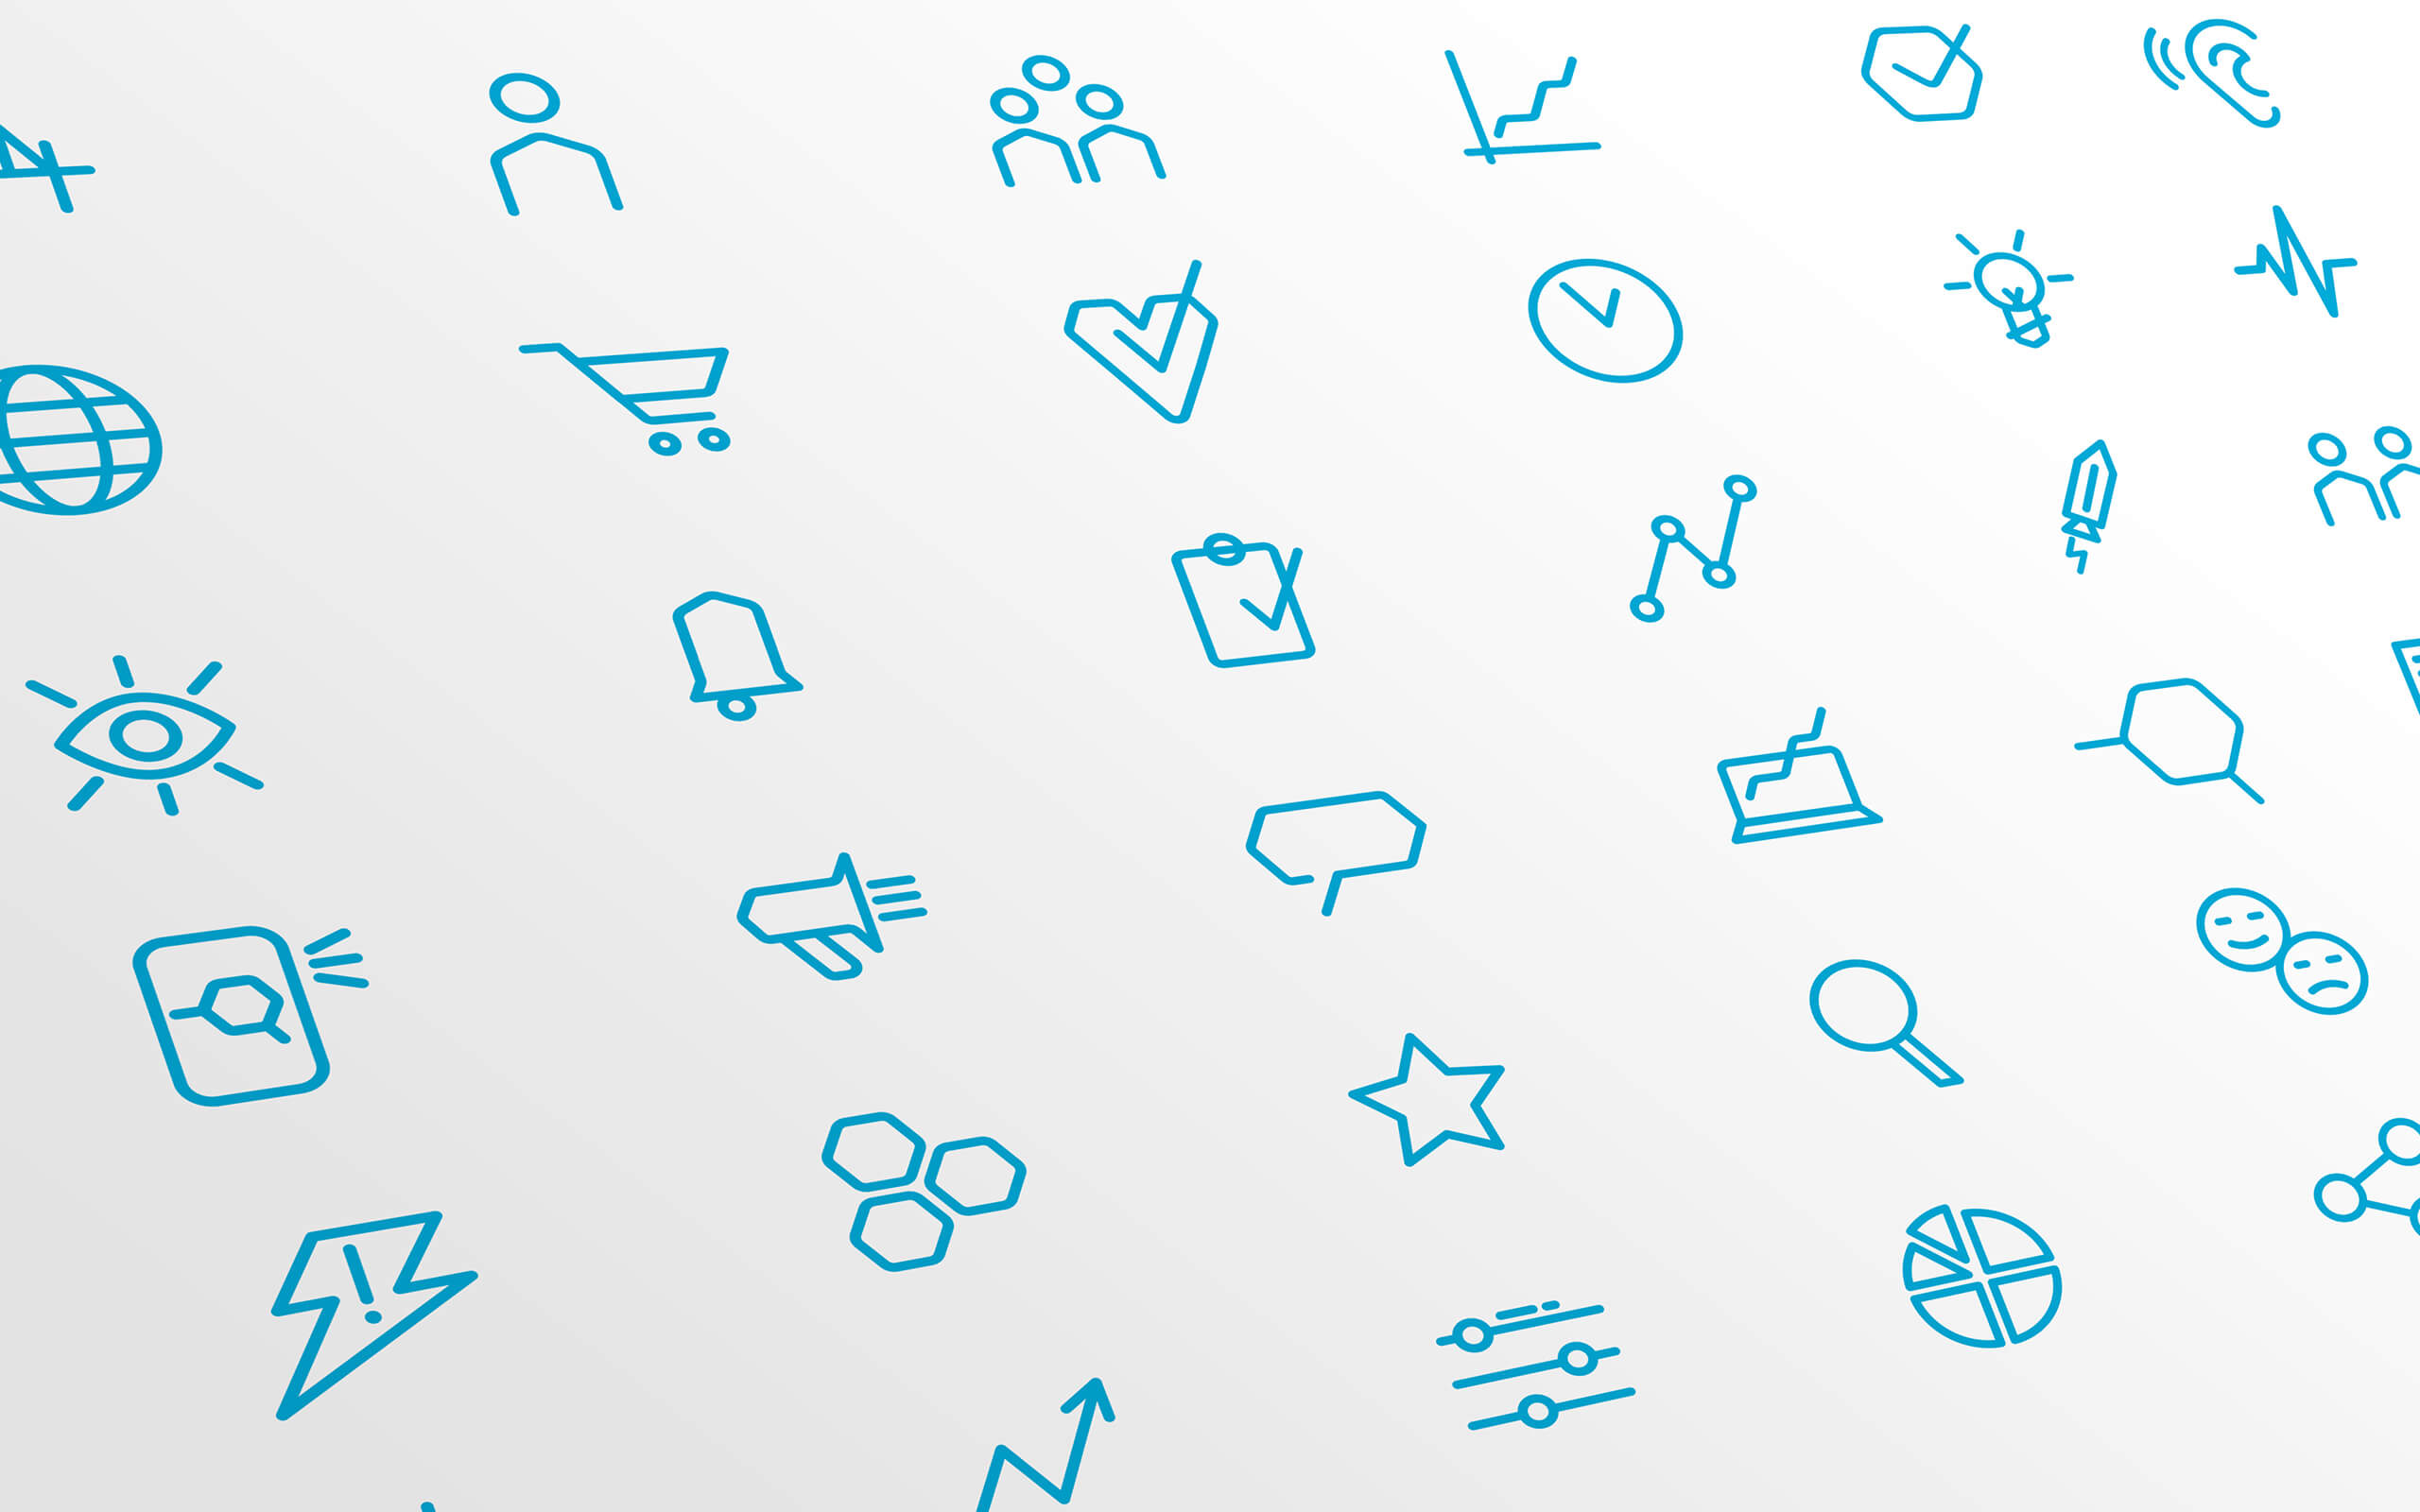 The Social Element icons guidelines